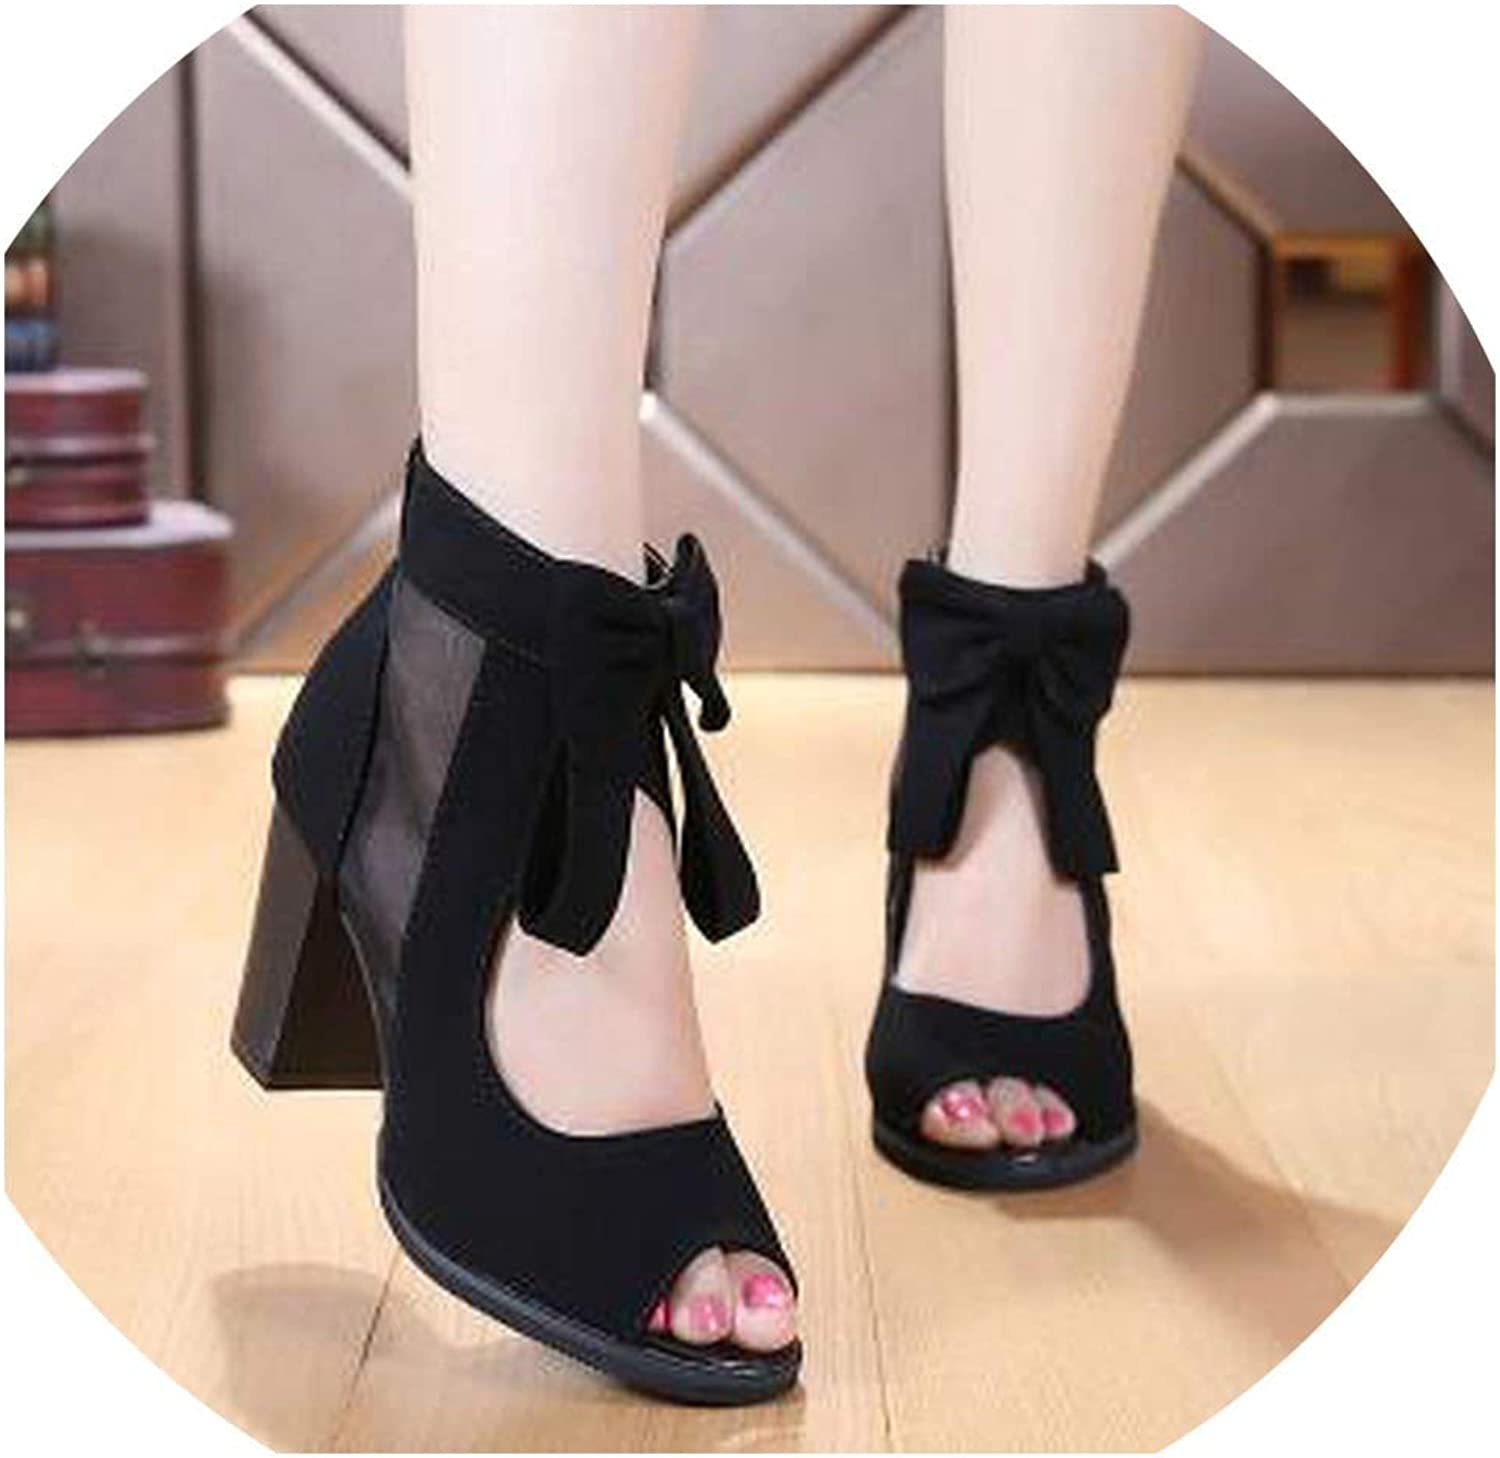 Fish Head Hollow Women shoes Sandals Lace Suede Leather shoes Woman Sandals Sexy Ankle Boots